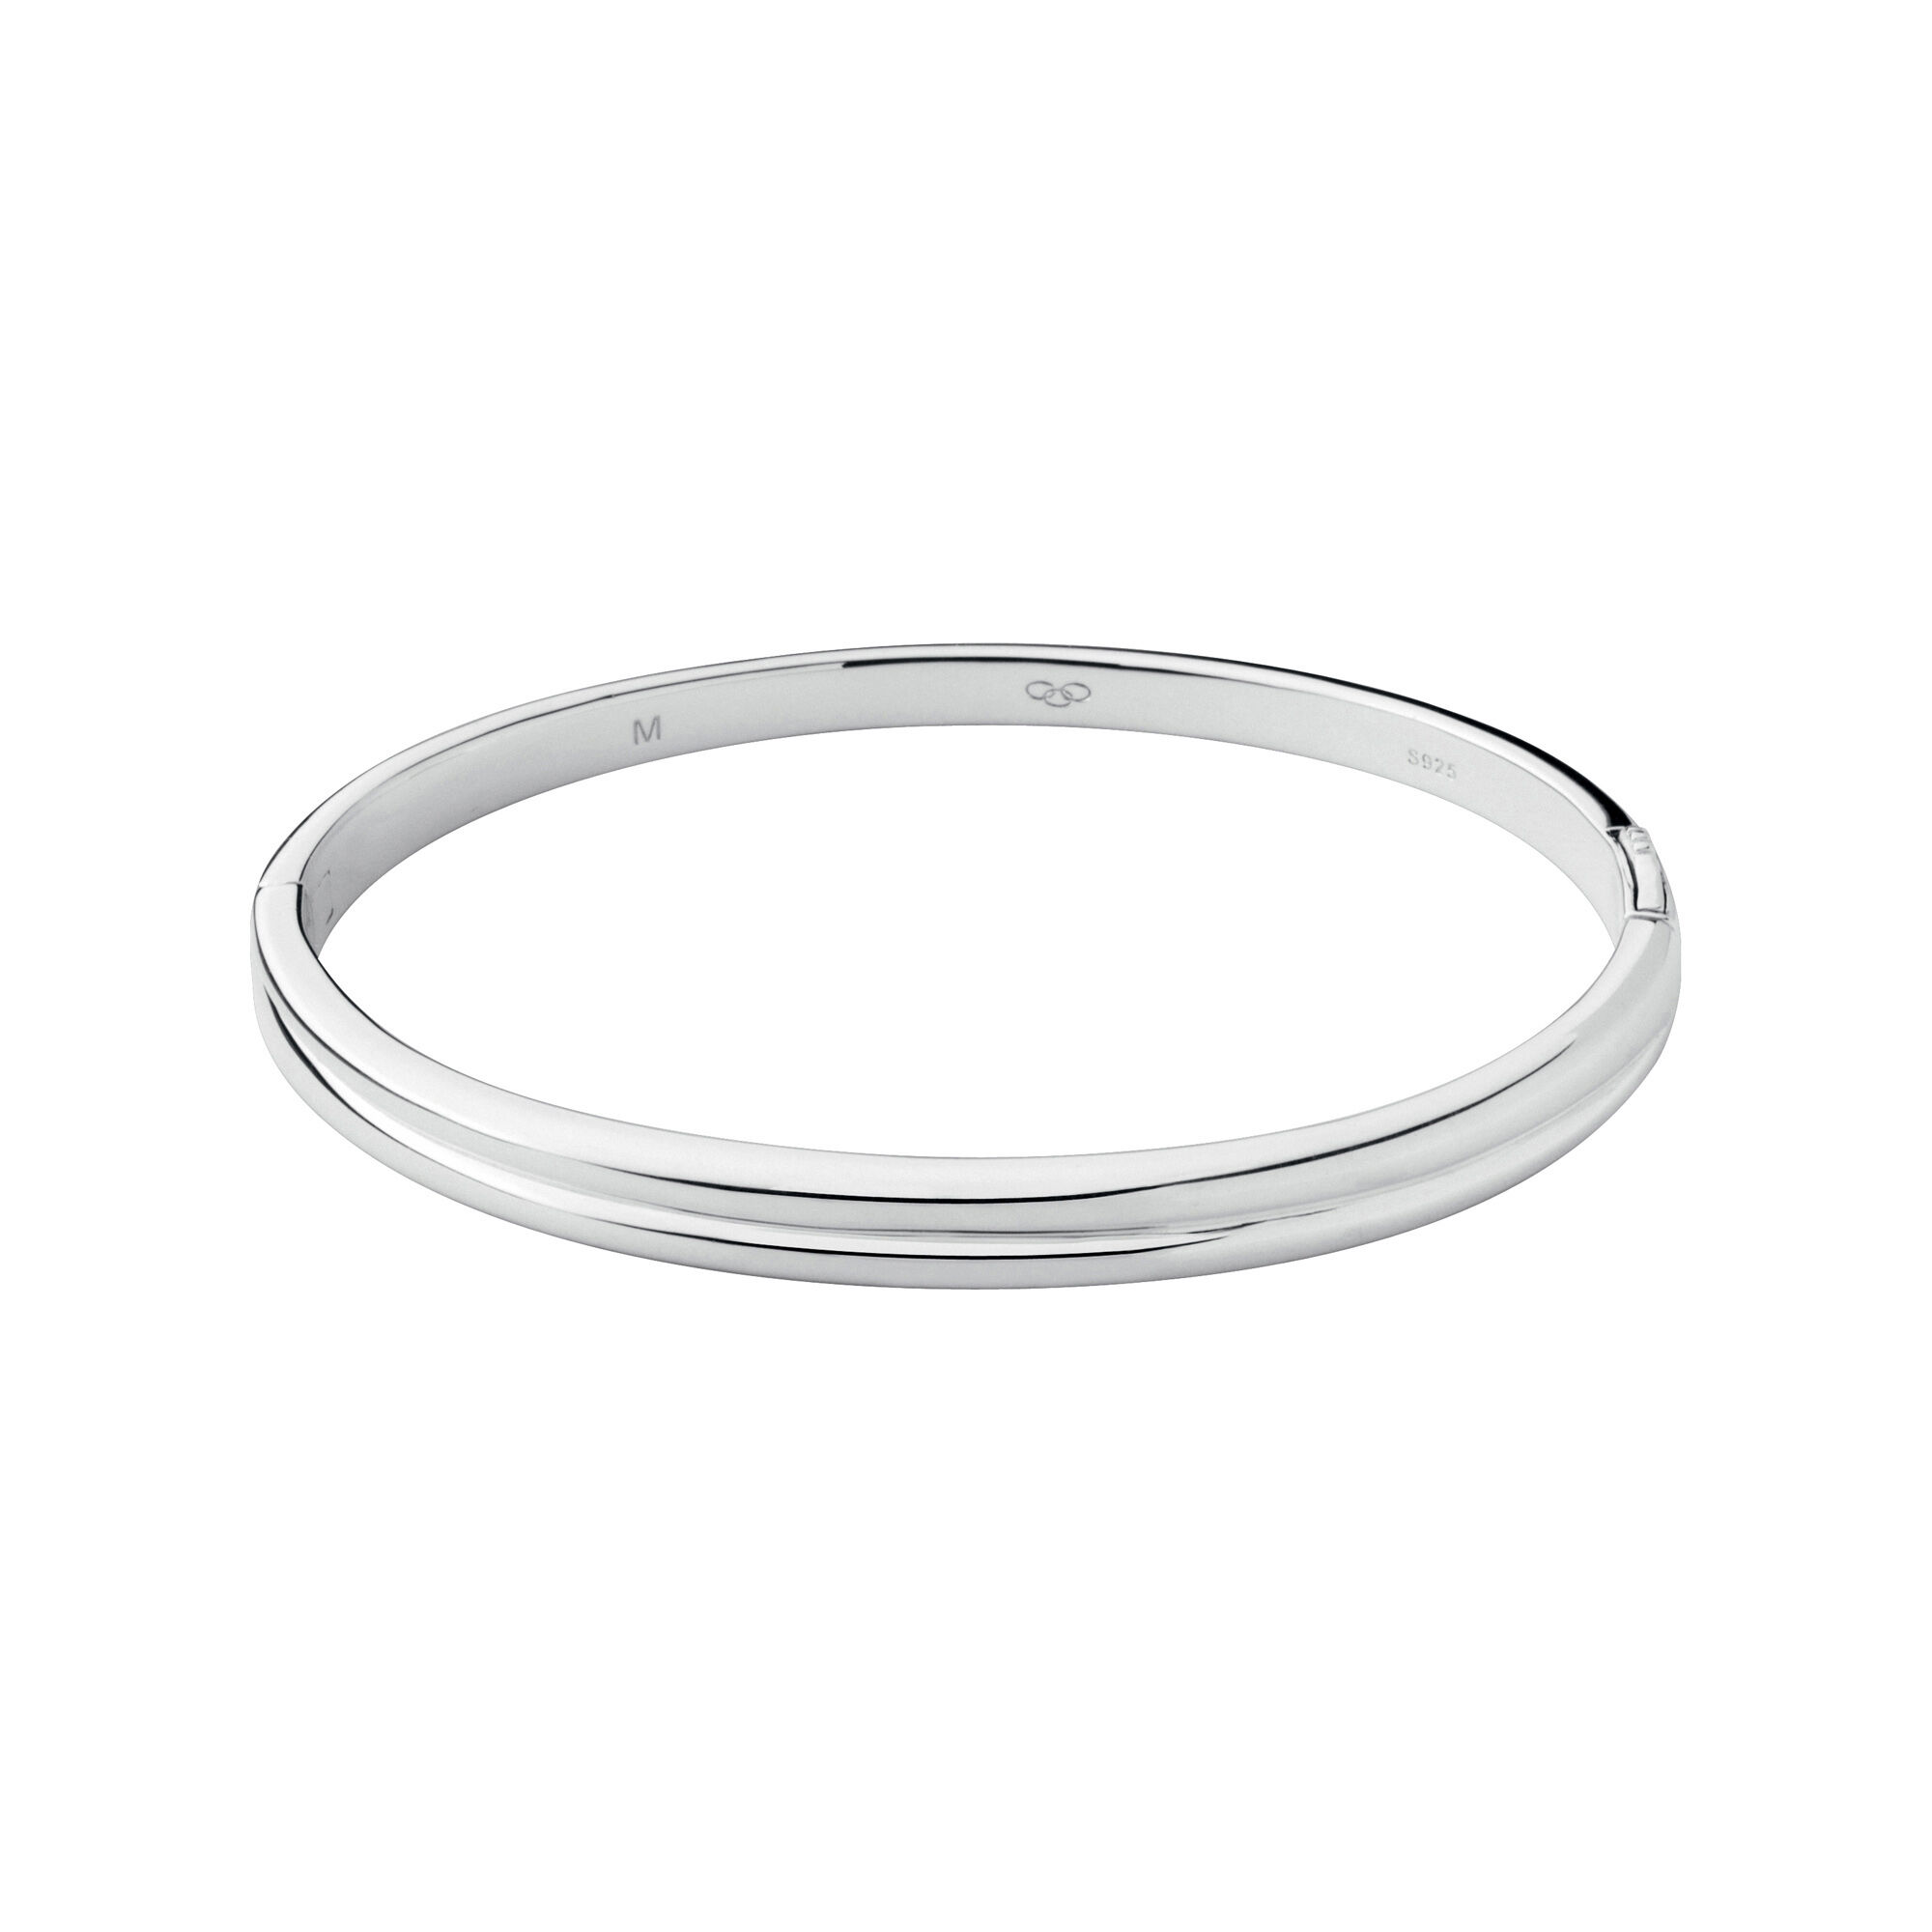 of bracelets silver bangle six product products bangles fullxfull il grande sterling hammered set